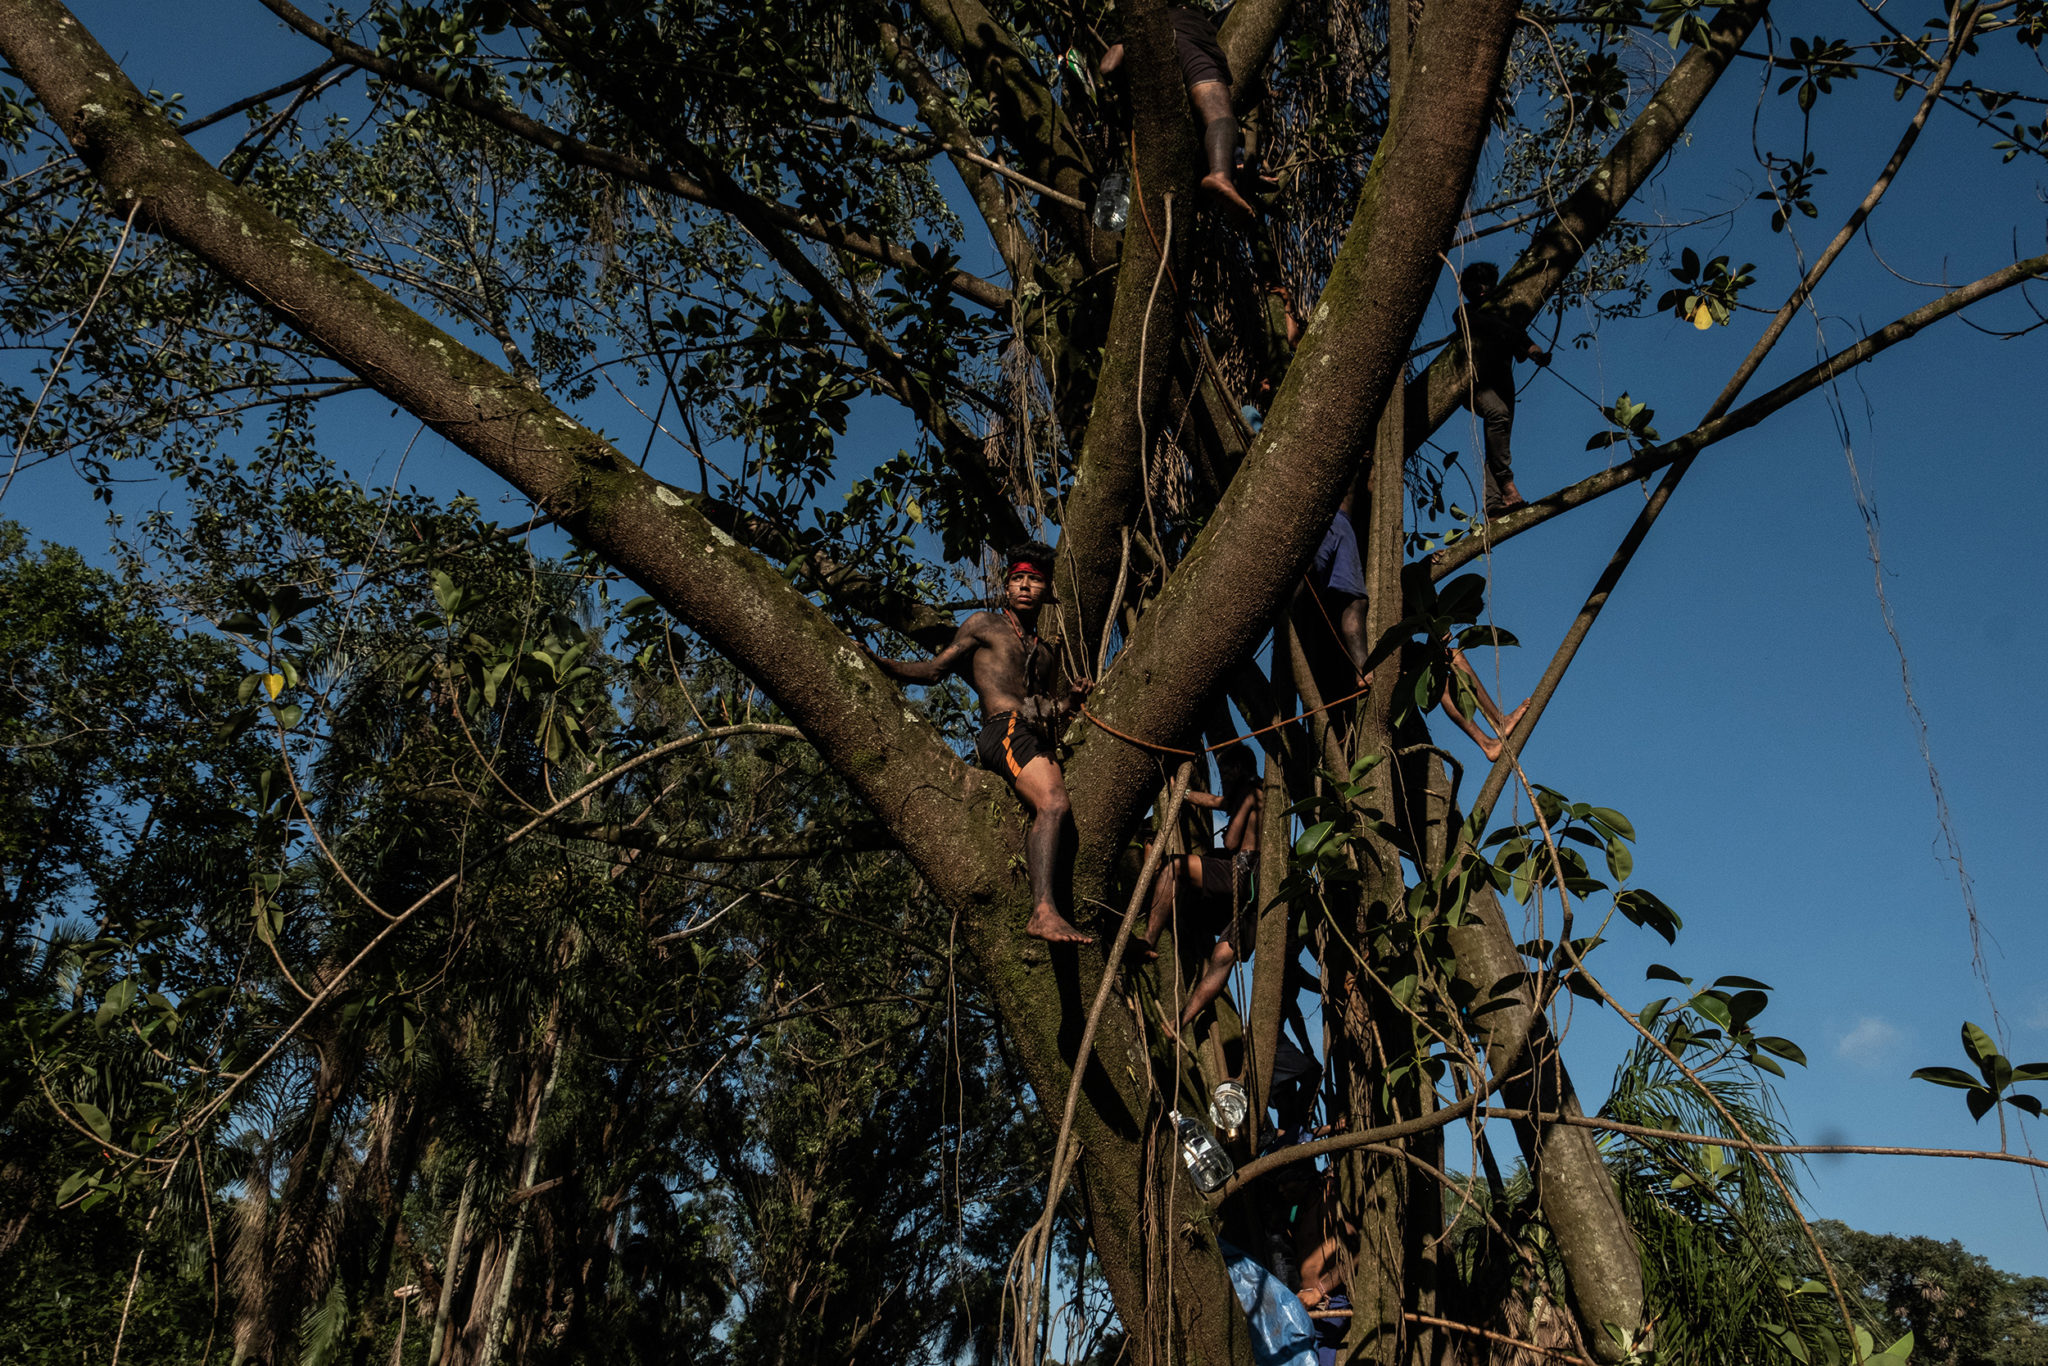 Guarani indigenous stand on top of a tree in alot in dispute with Tenda construction company in São Paulo.Image by Tommaso Prottifor Mongabay